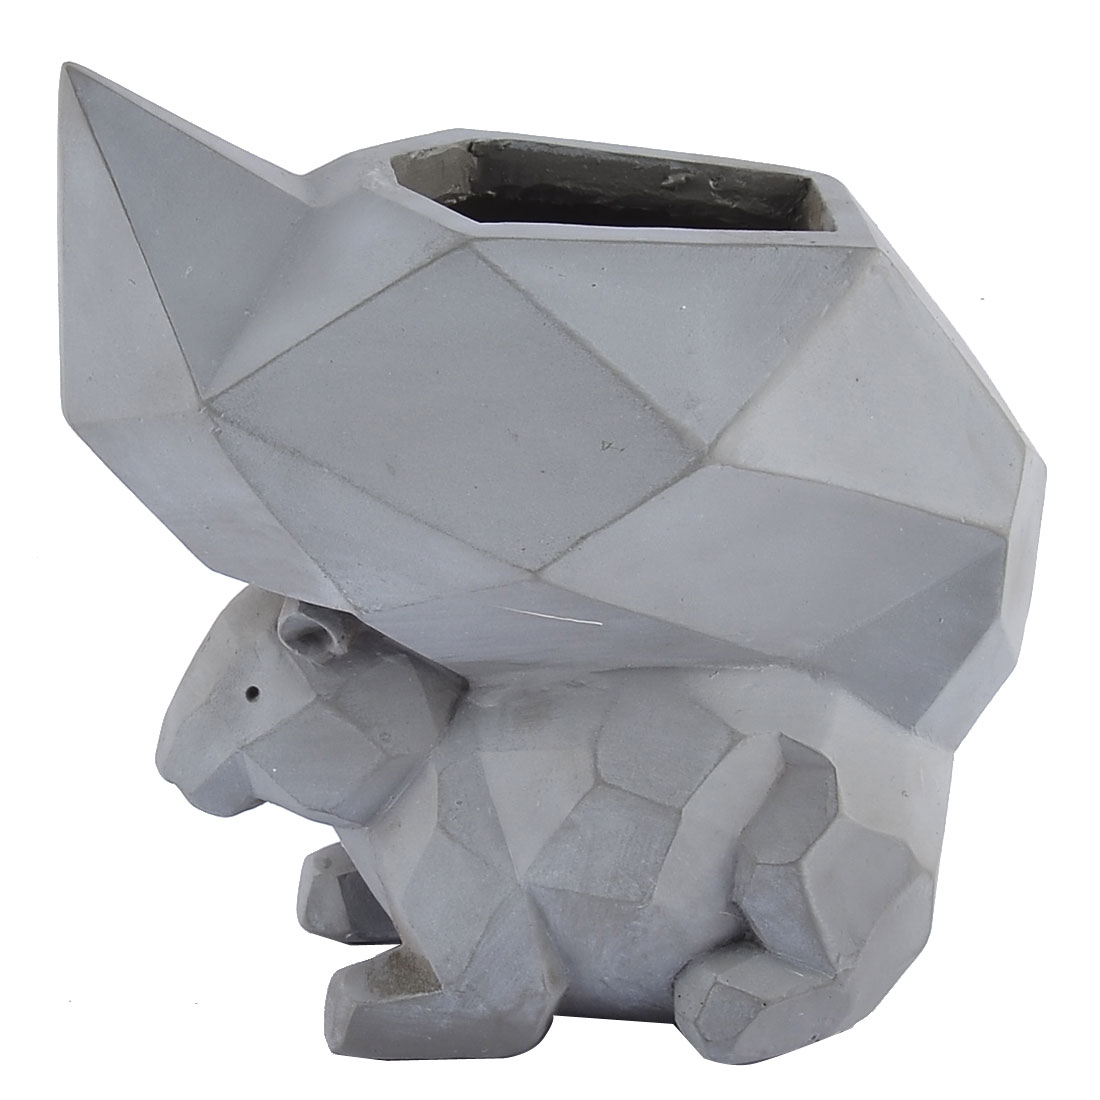 Home Garden Office Resin Squirrel Shaped Plant Flower Pot Planter Light Gray